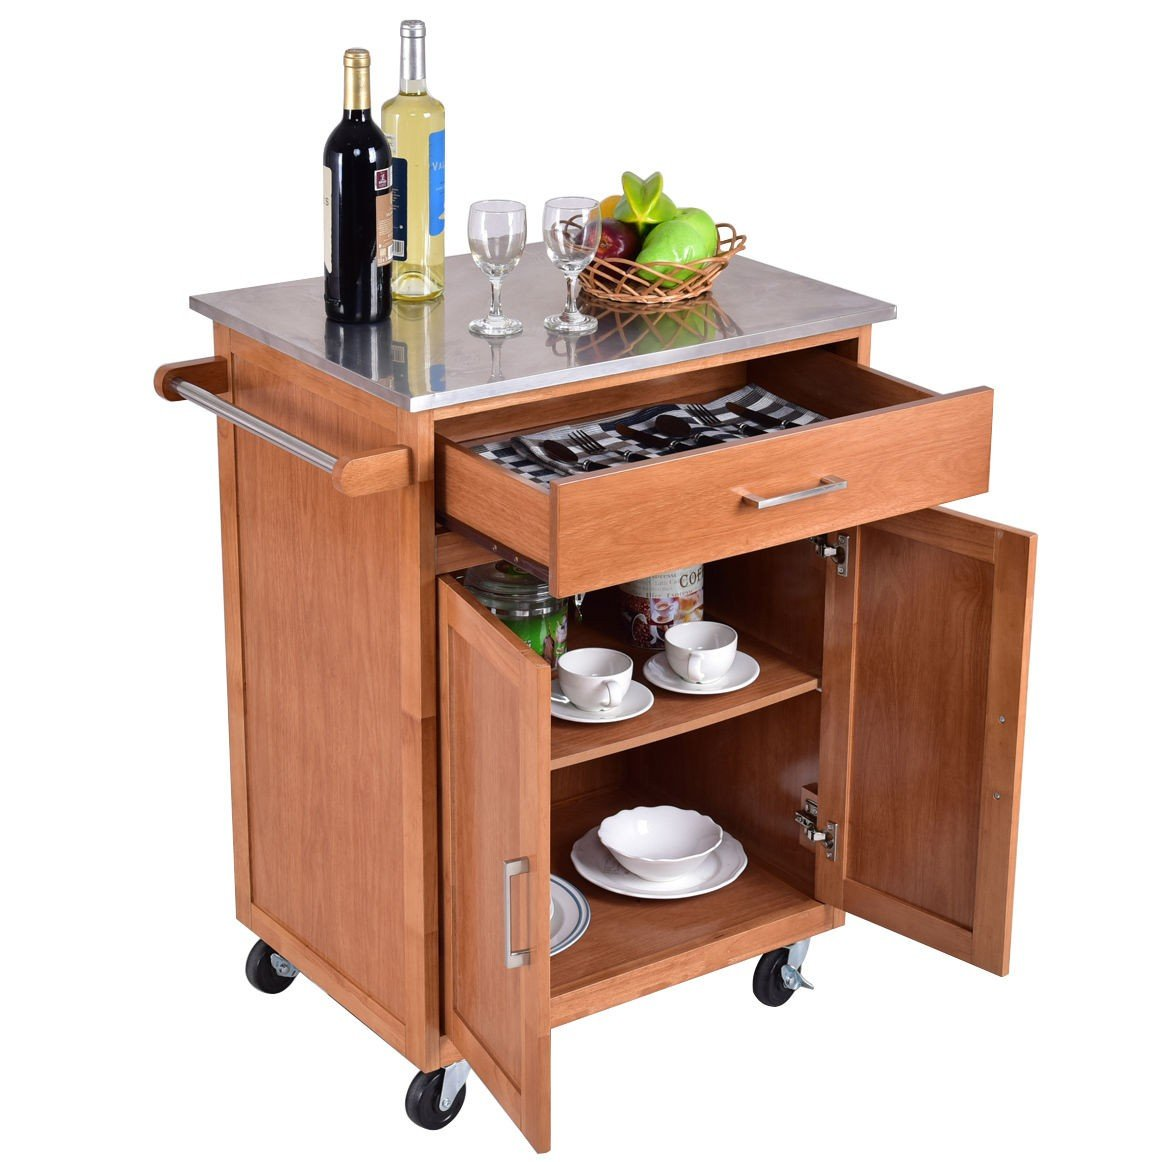 Wooden Kitchen Rolling Storage Cabinet with Stainless ...